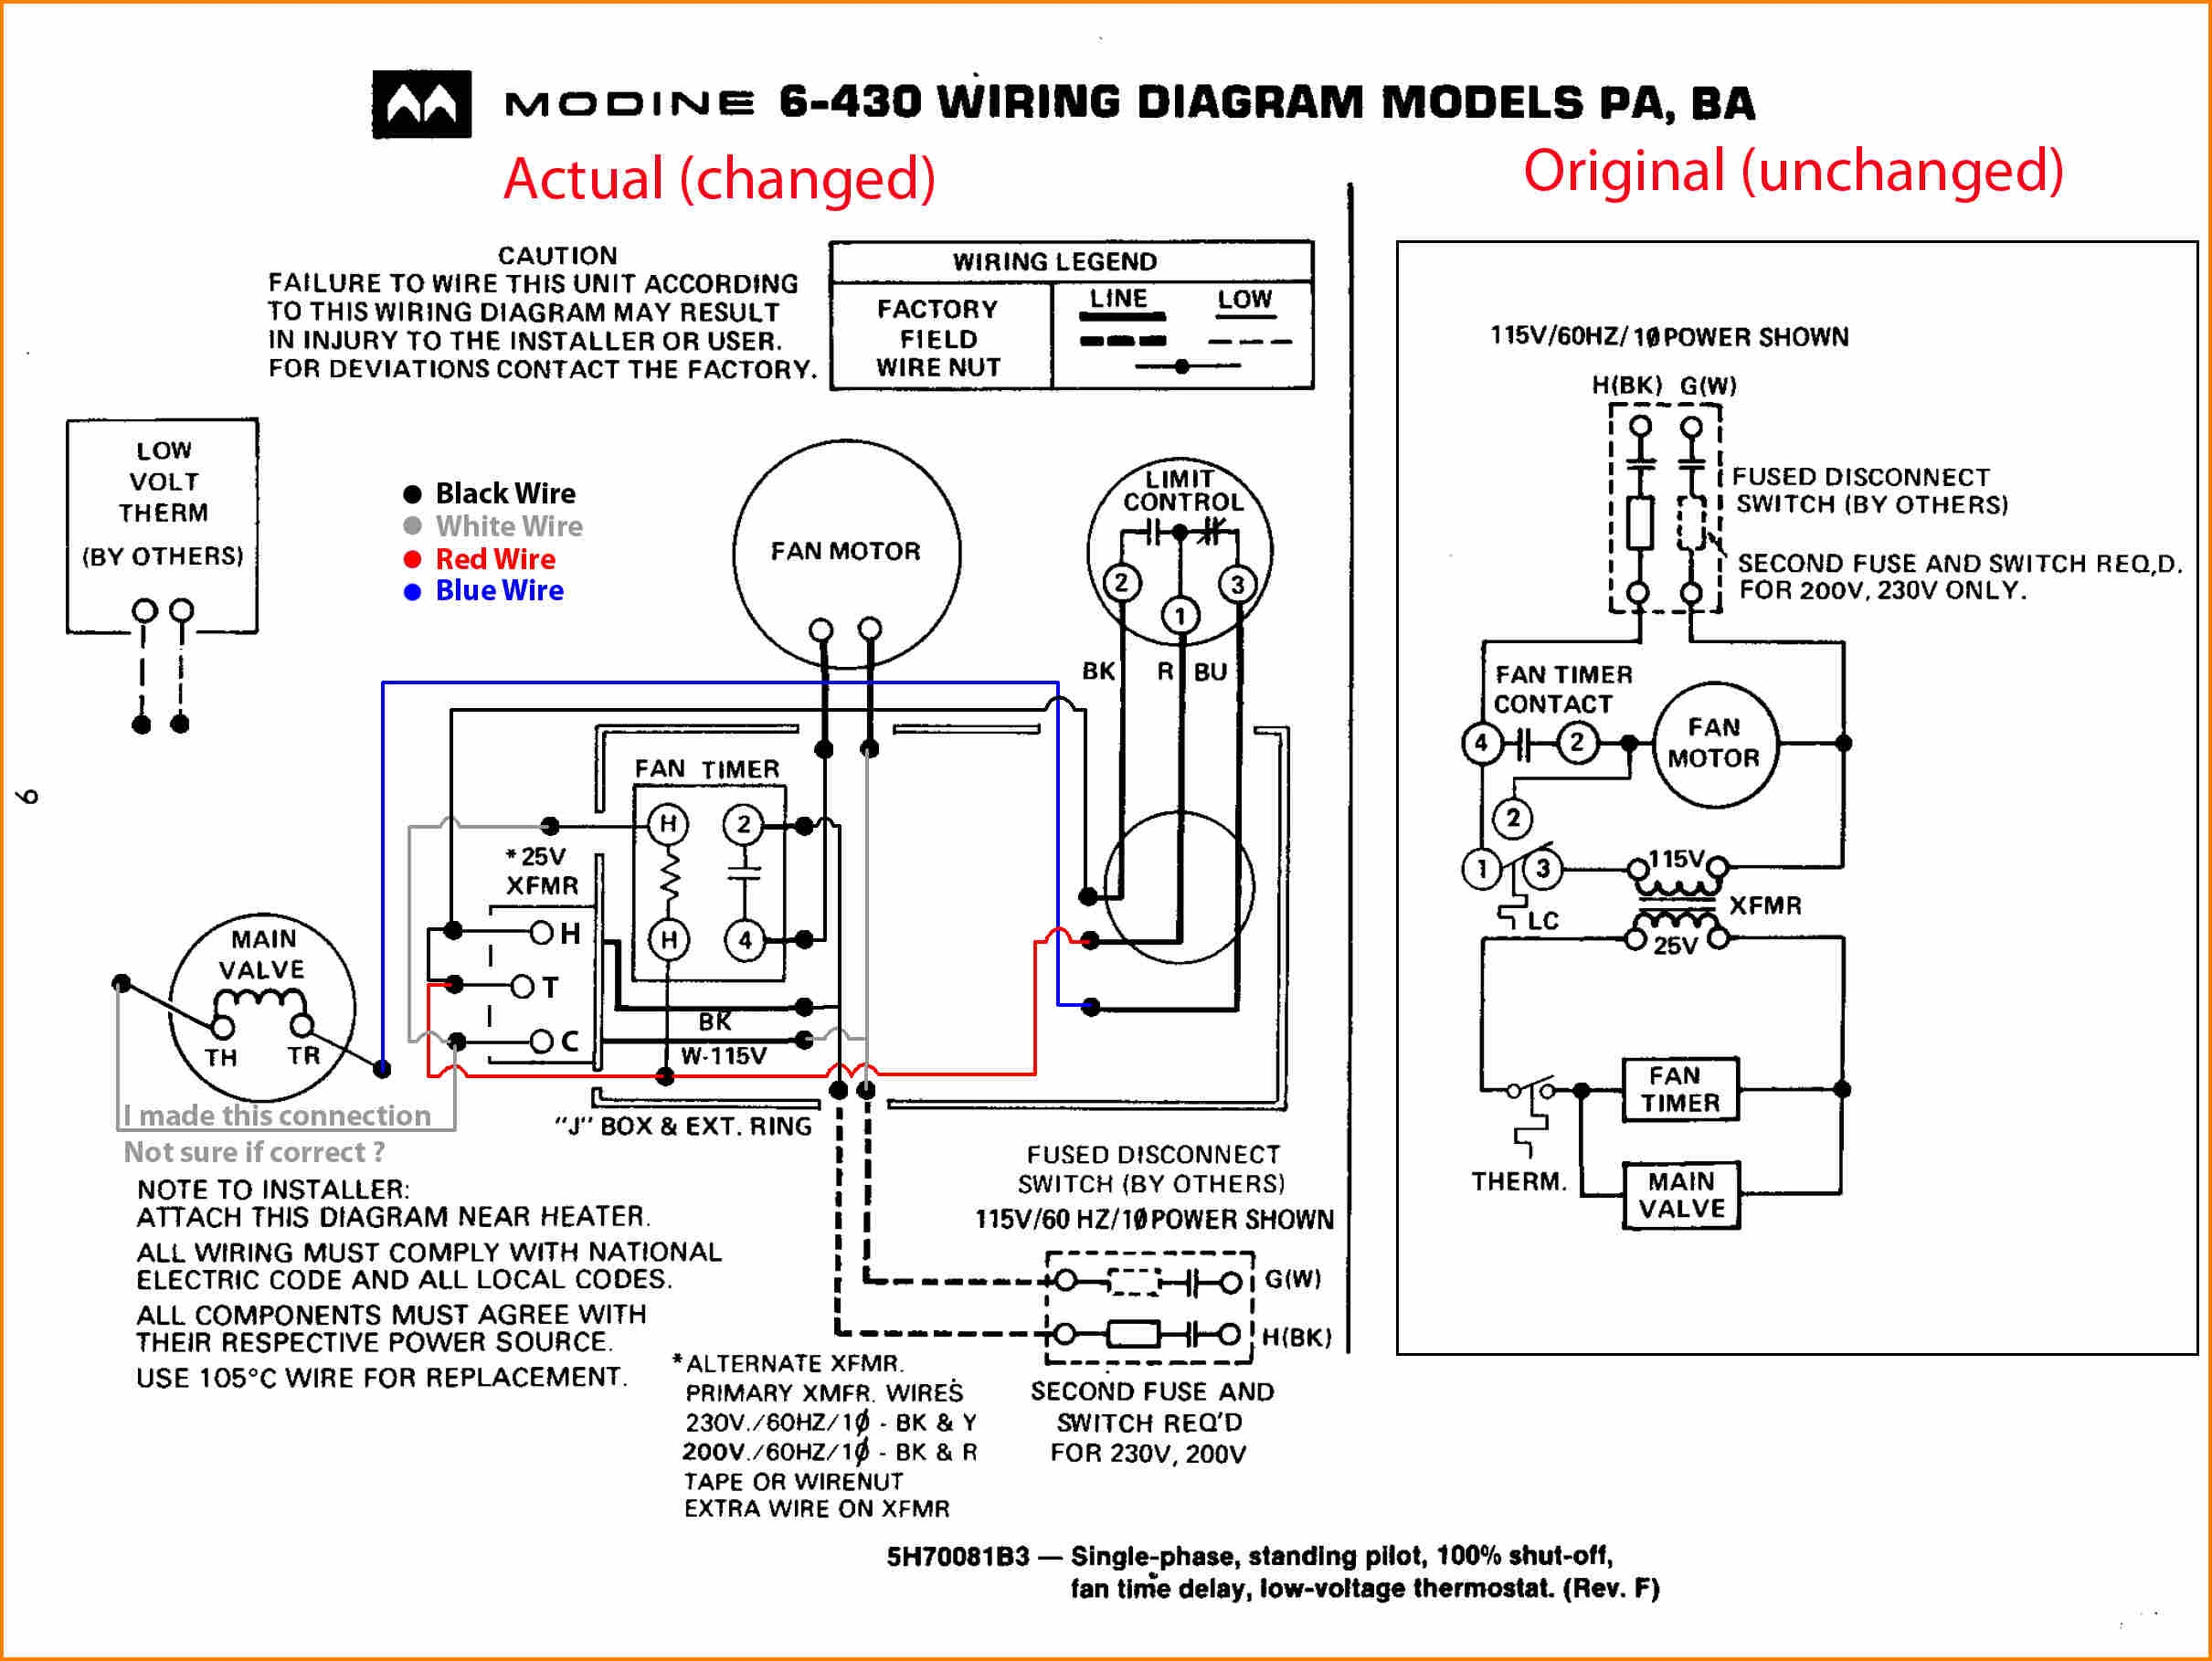 Motor Wiring Schematics - Machine Repair Manual on